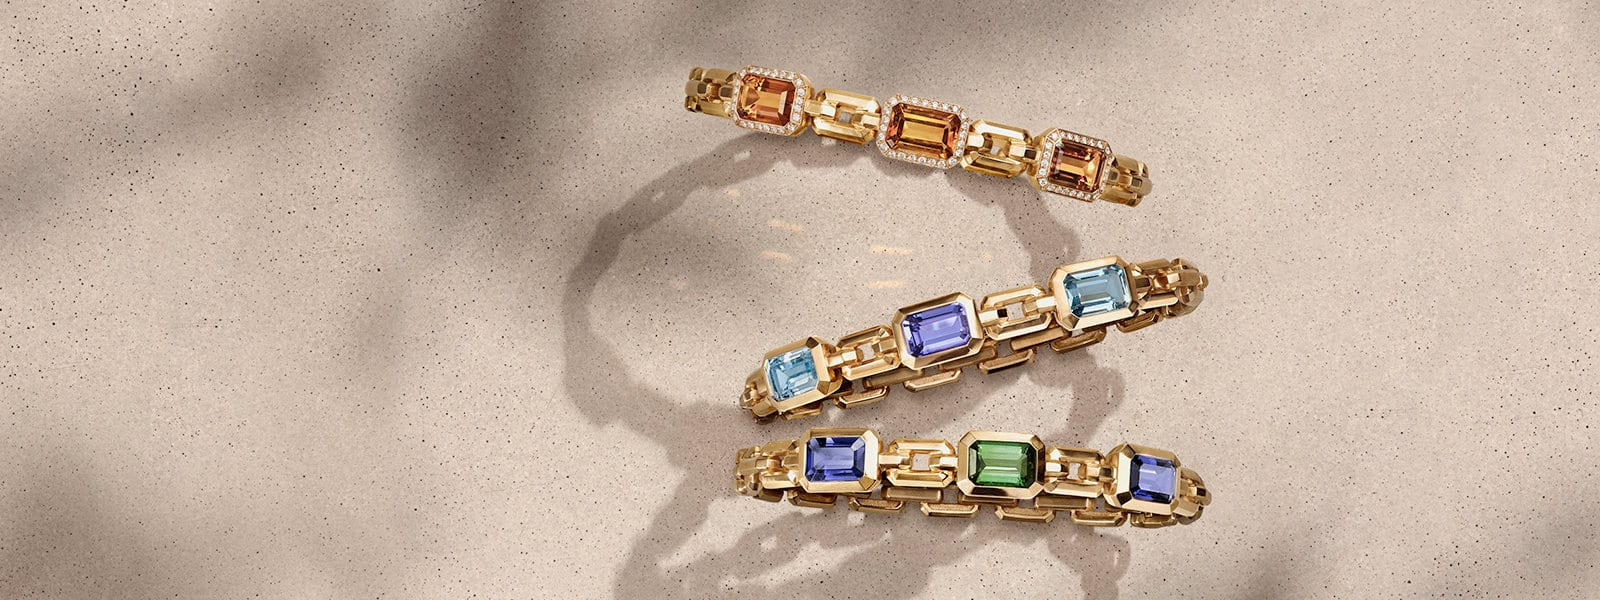 David Yurman Novella bracelets in 18K yellow gold with Madeira citrine and white diamonds, blue topaz and tanzanite, or iolite and green tourmaline, in a vertical stack casting long shadows on a sandy-colored stone.